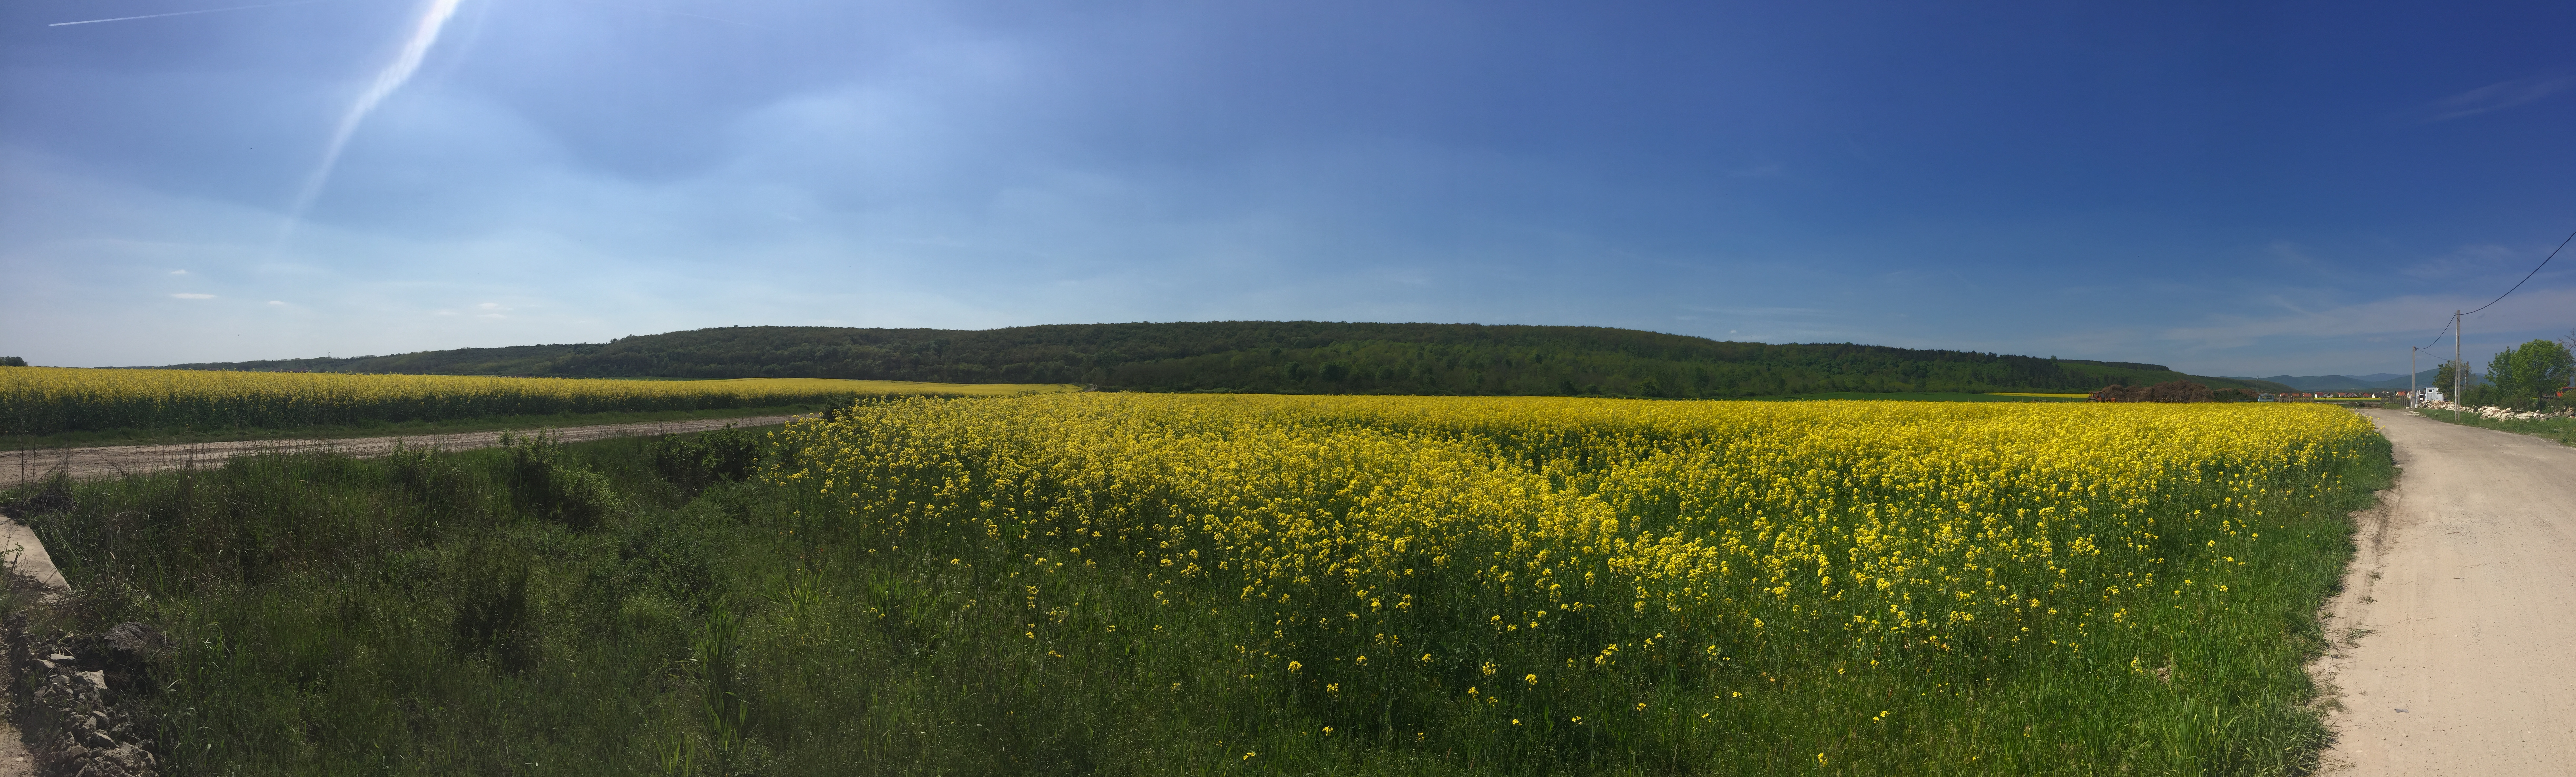 Blooming rape field over Bükkzsérc